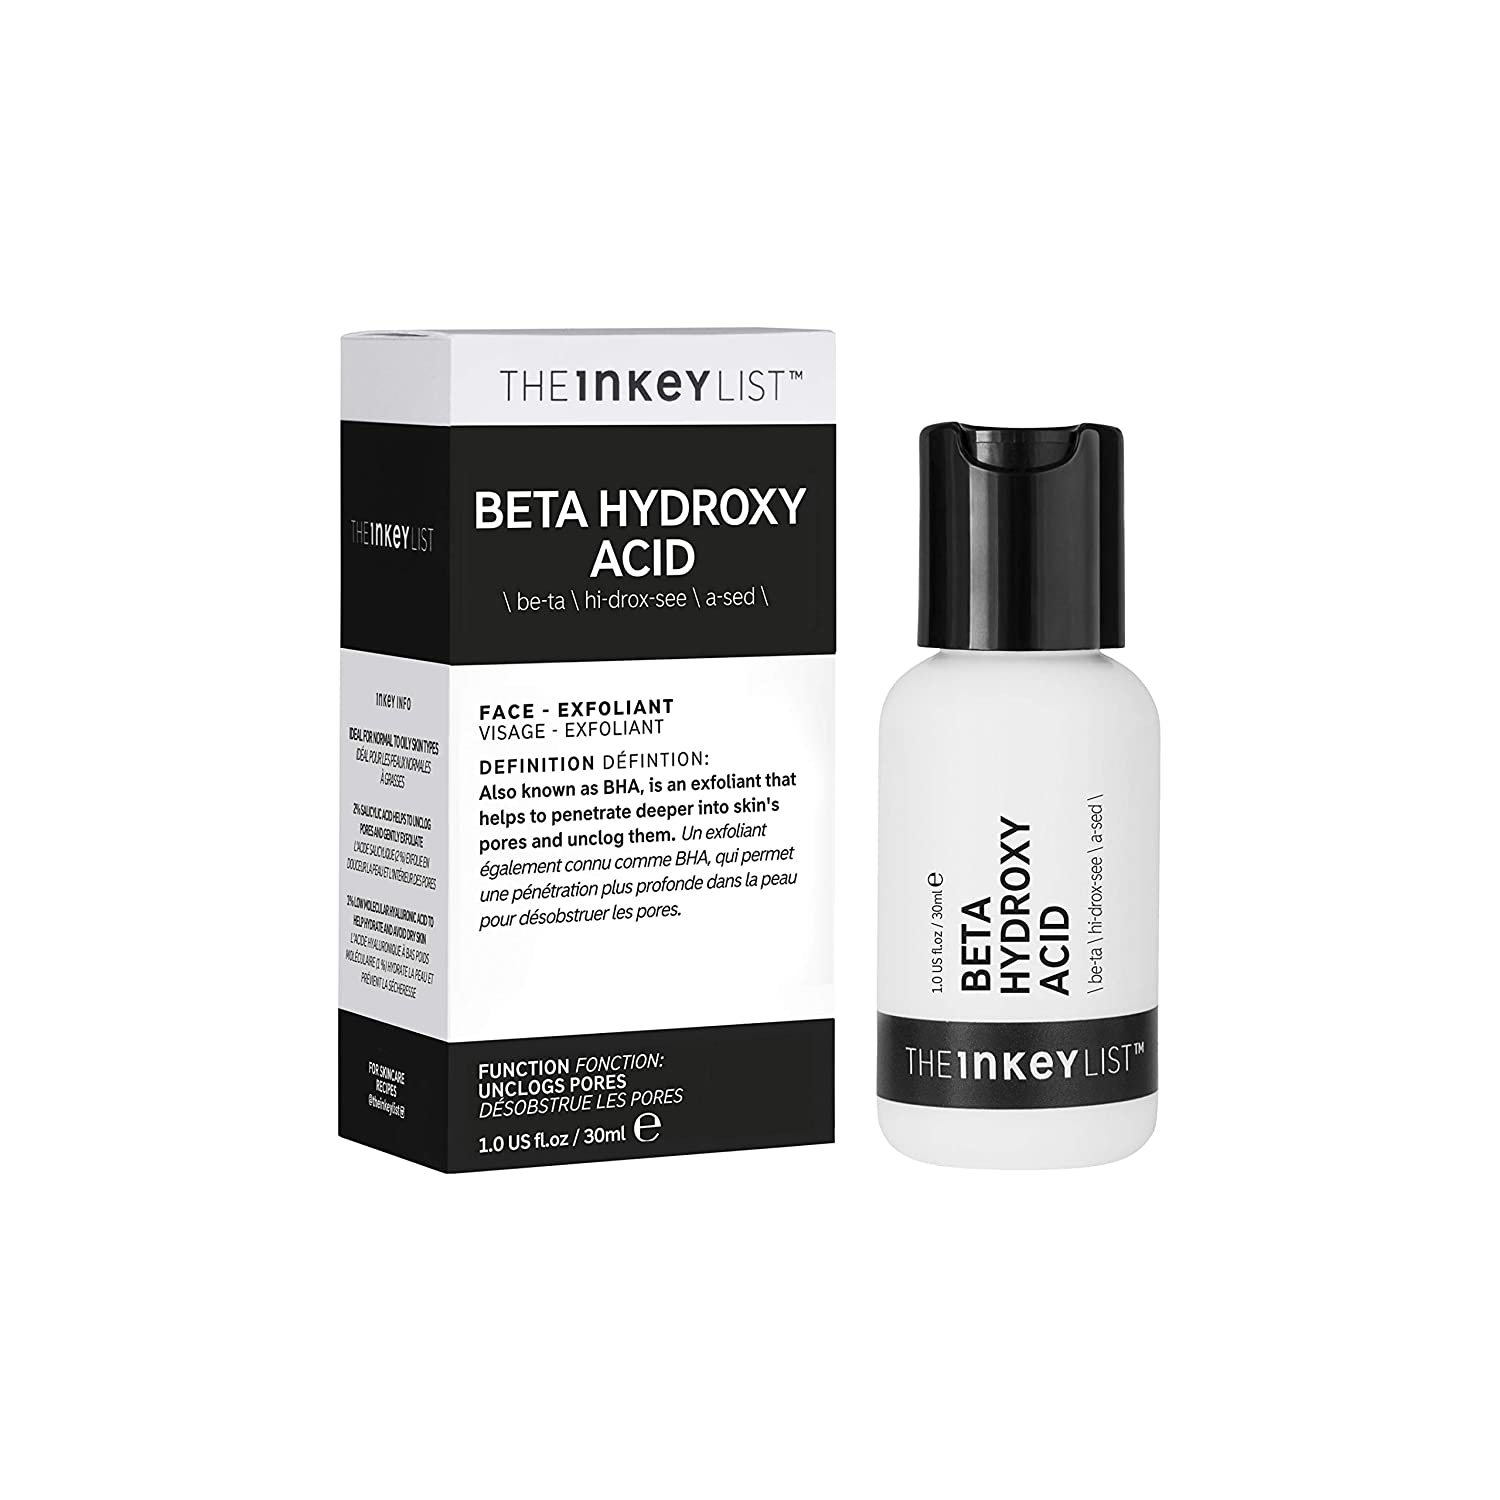 The Inkey List Beta Hydroxy Acid Face Exfoliant